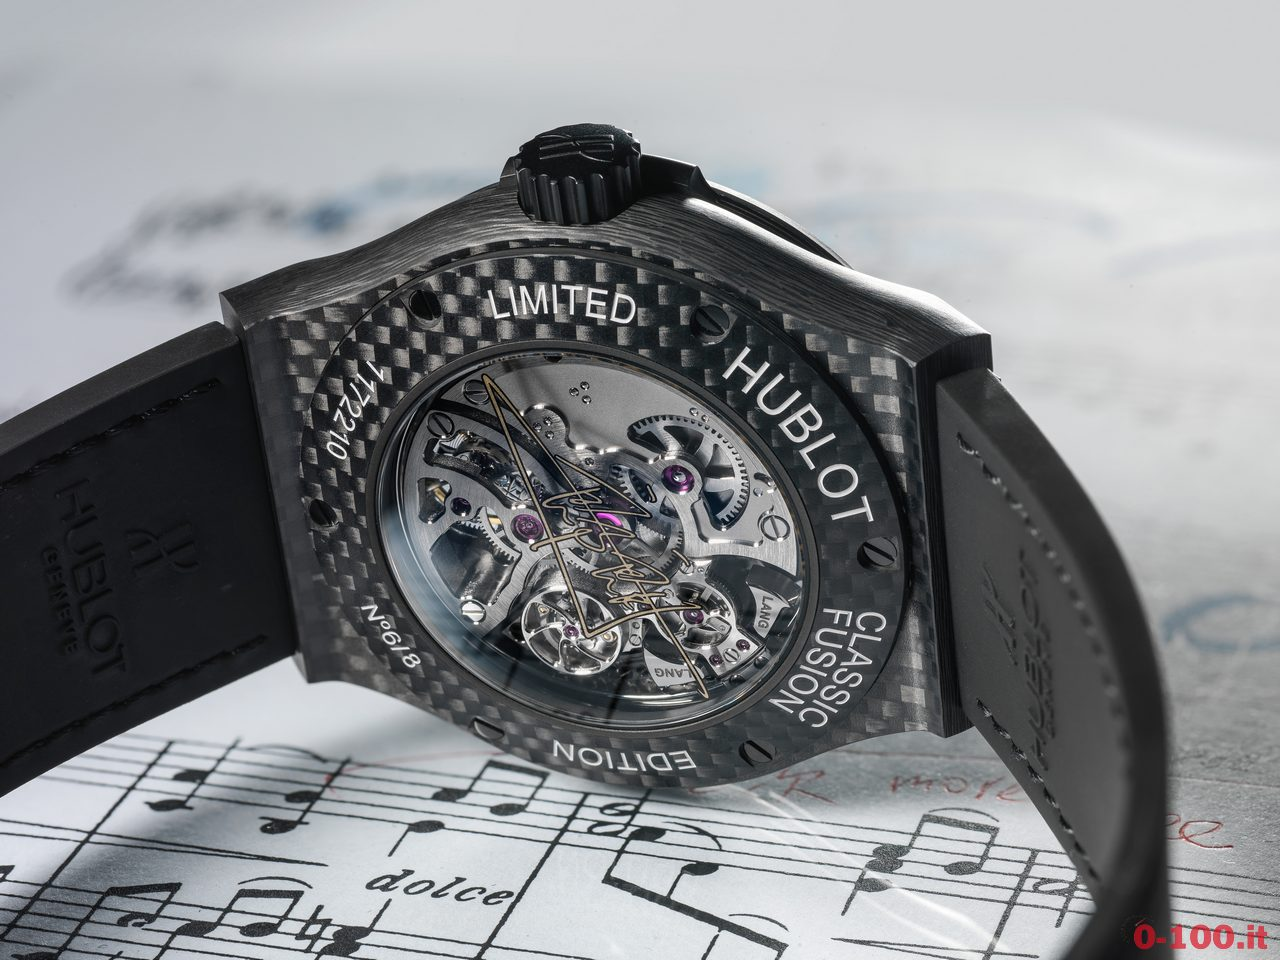 hublot-classic-fusion-tourbillon-cathedral-minute-repeater-carbon-lang-lang-limited-edition-ref-504-qx-0180-vr-lal16-prezzo-price_0-1007